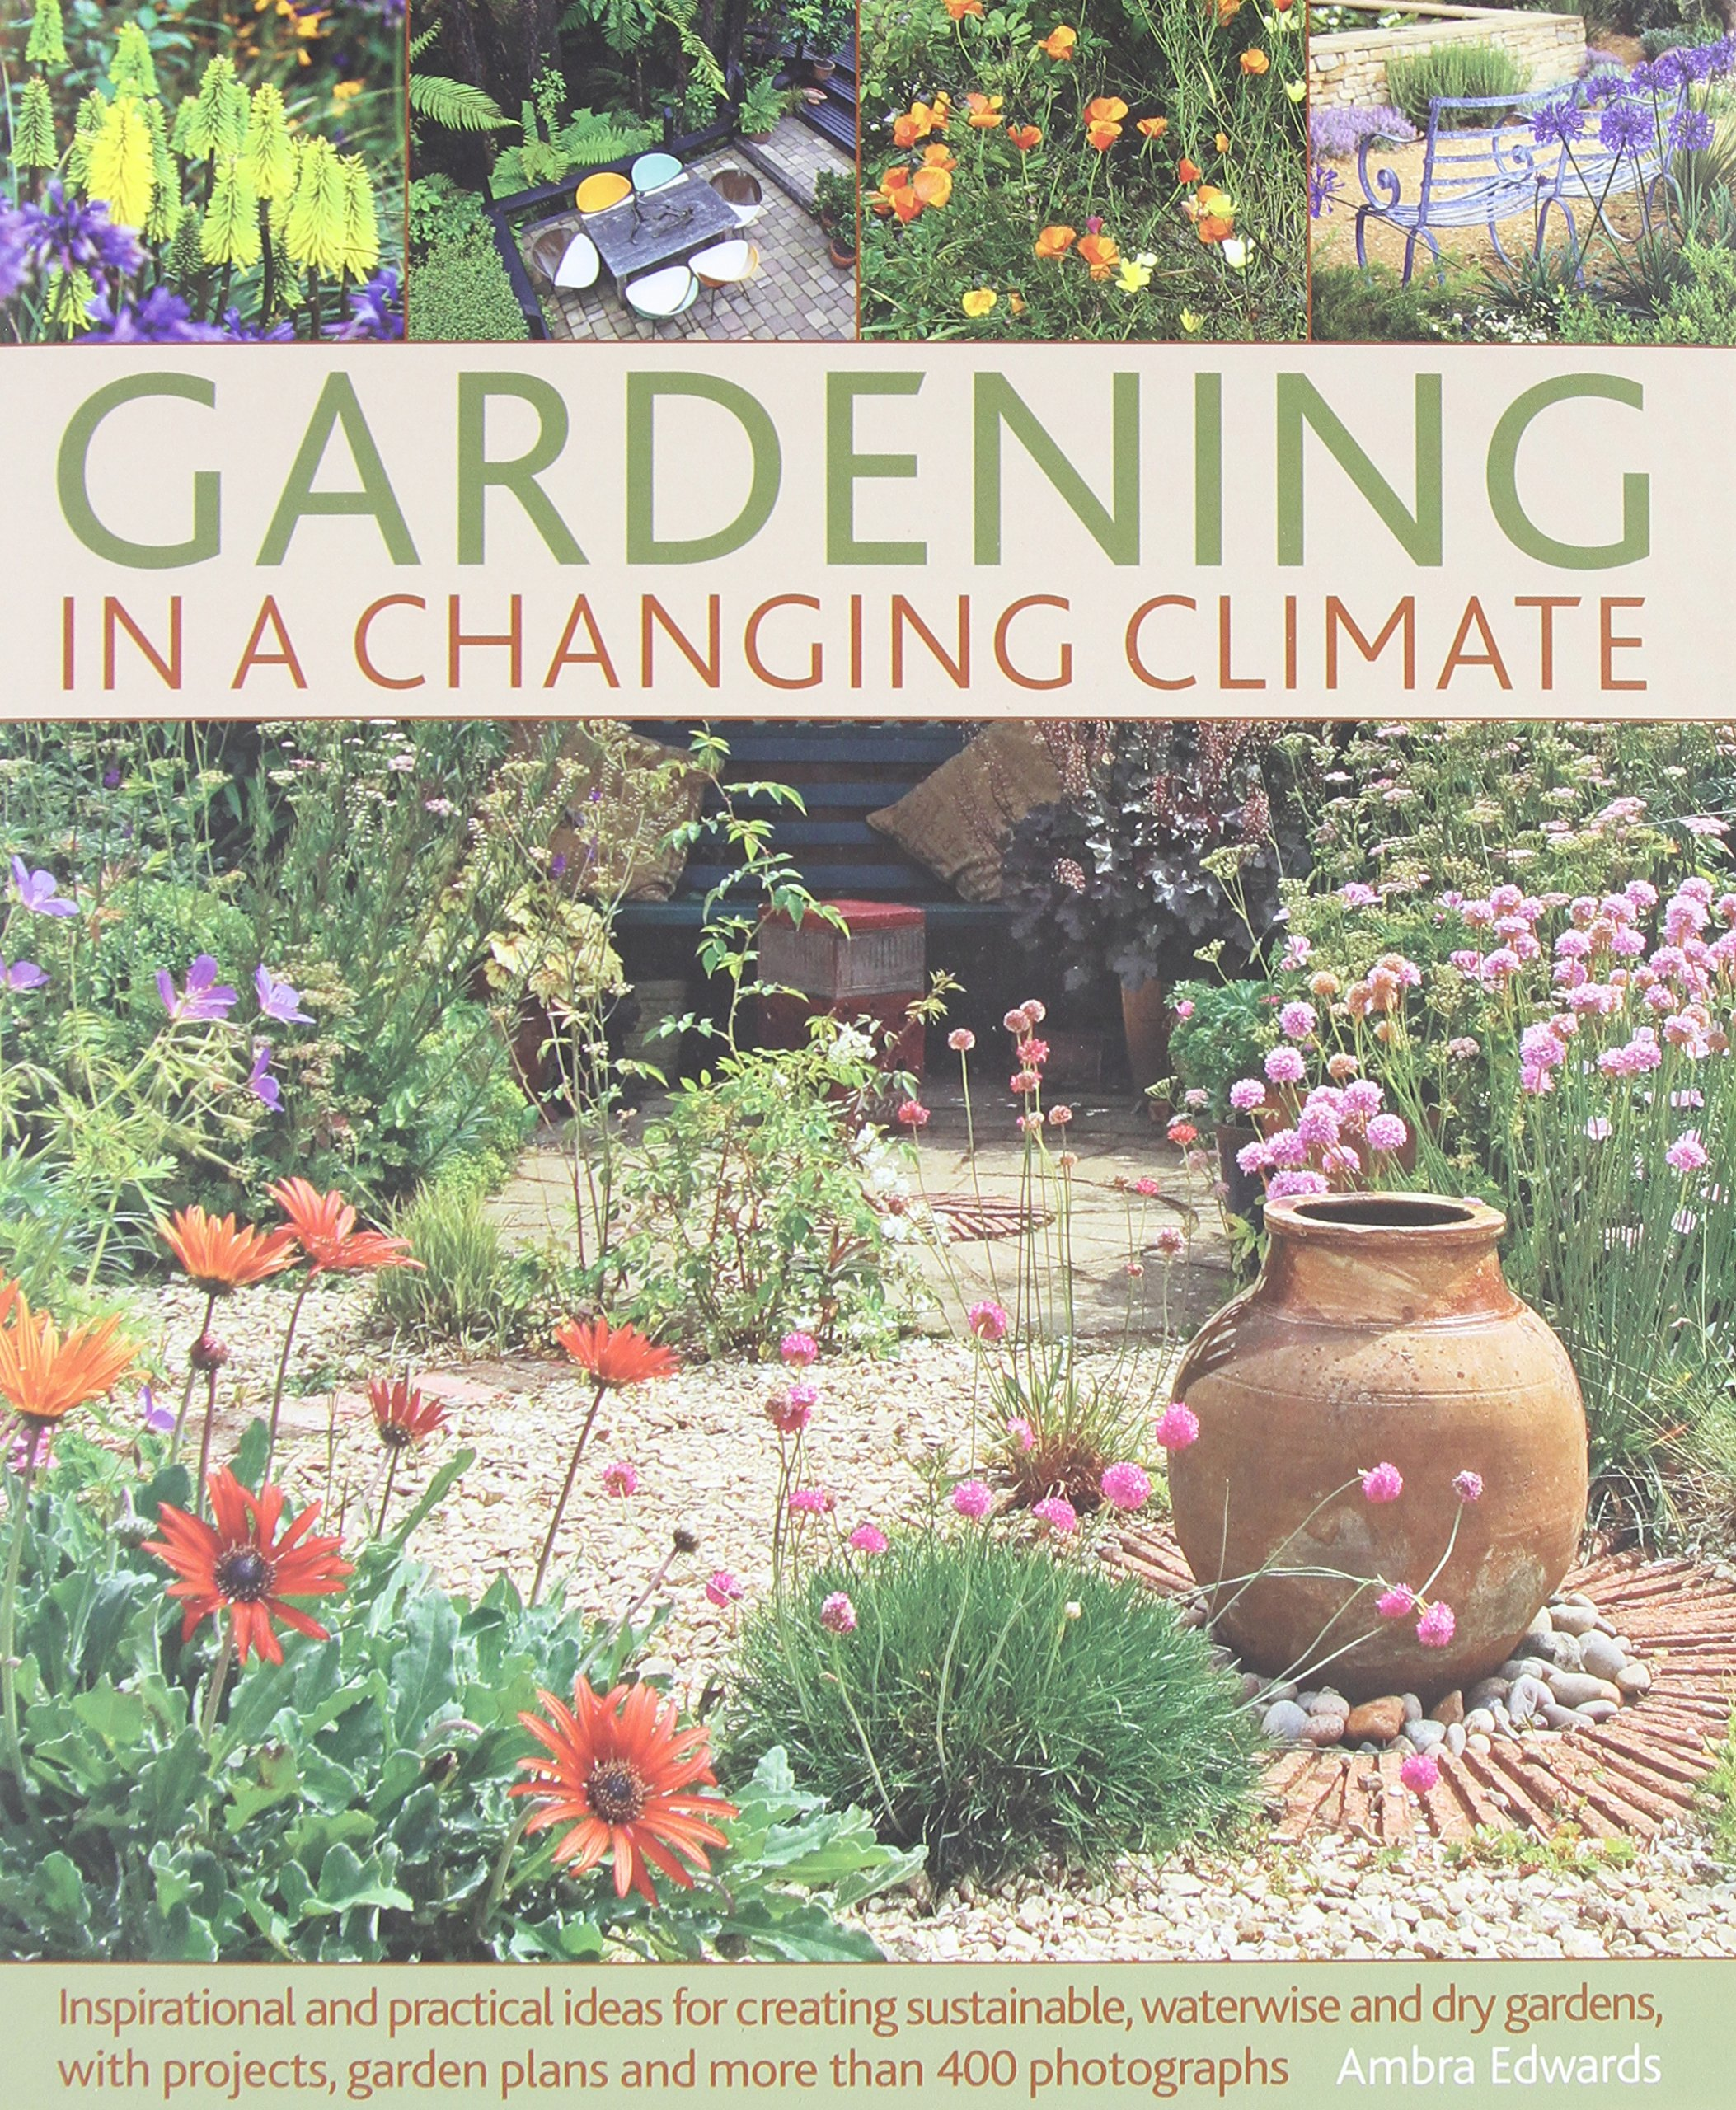 Gardening in a Changing Climate: Inspiration and practical ideas for creating sustainable, waterwise and dry gardens, with projects, planting plans and more than 400 photographs